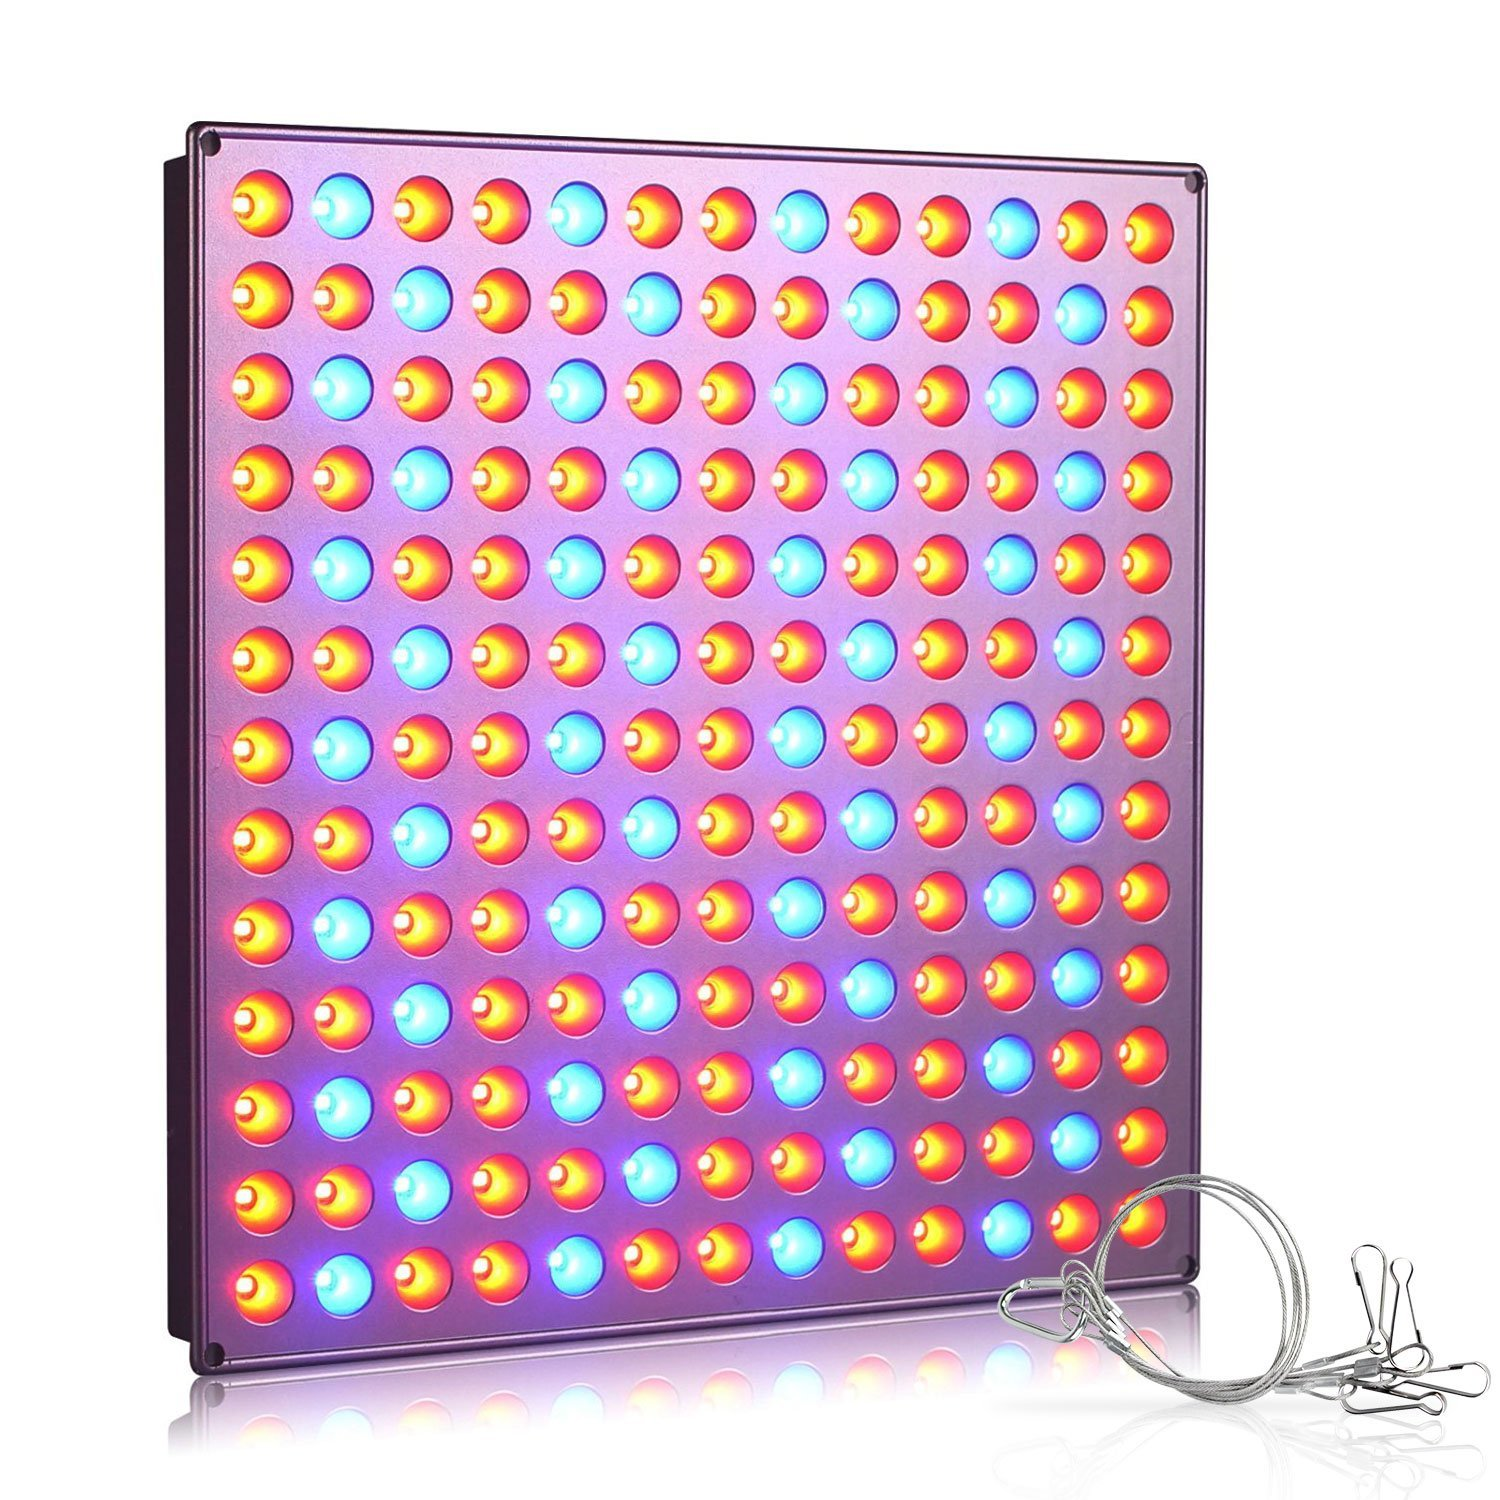 Top 15 Best LED Grow Lights Reviews in 2019 (Growing Marijuana & Weed) 4